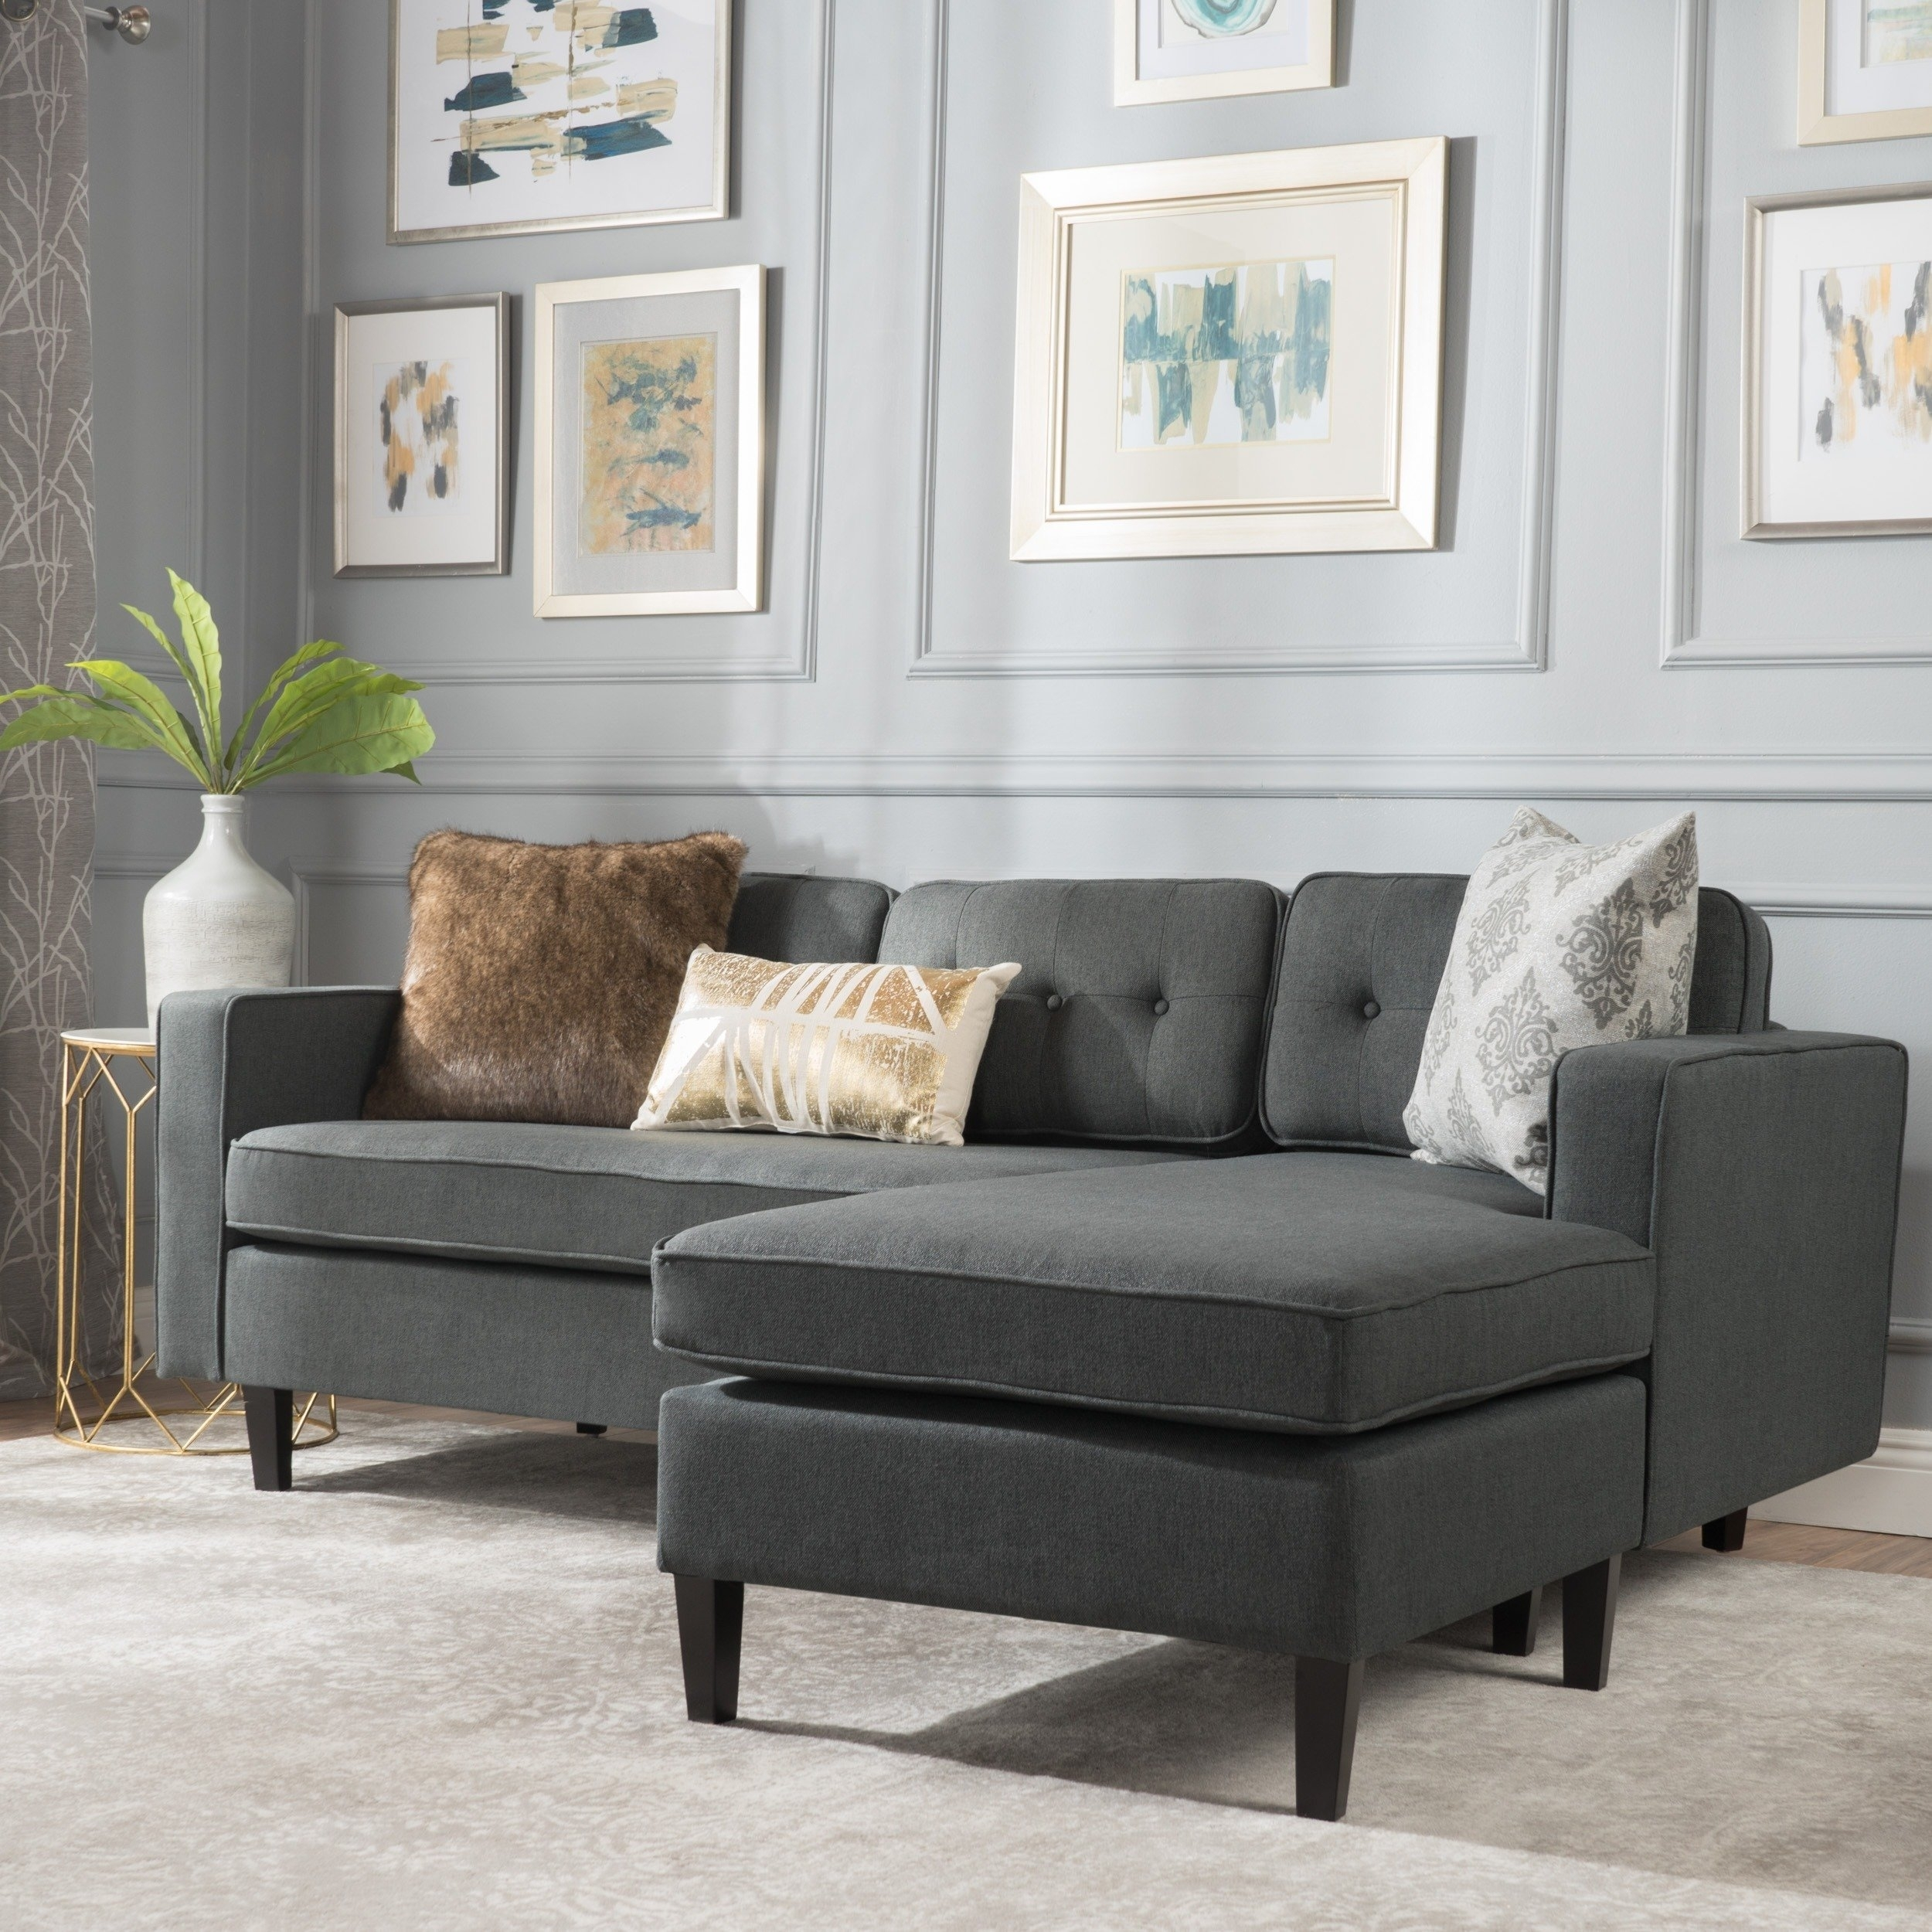 2 Piece Chaise Sectional Sofa | Baci Living Room pertaining to Tenny Dark Grey 2 Piece Right Facing Chaise Sectionals With 2 Headrest